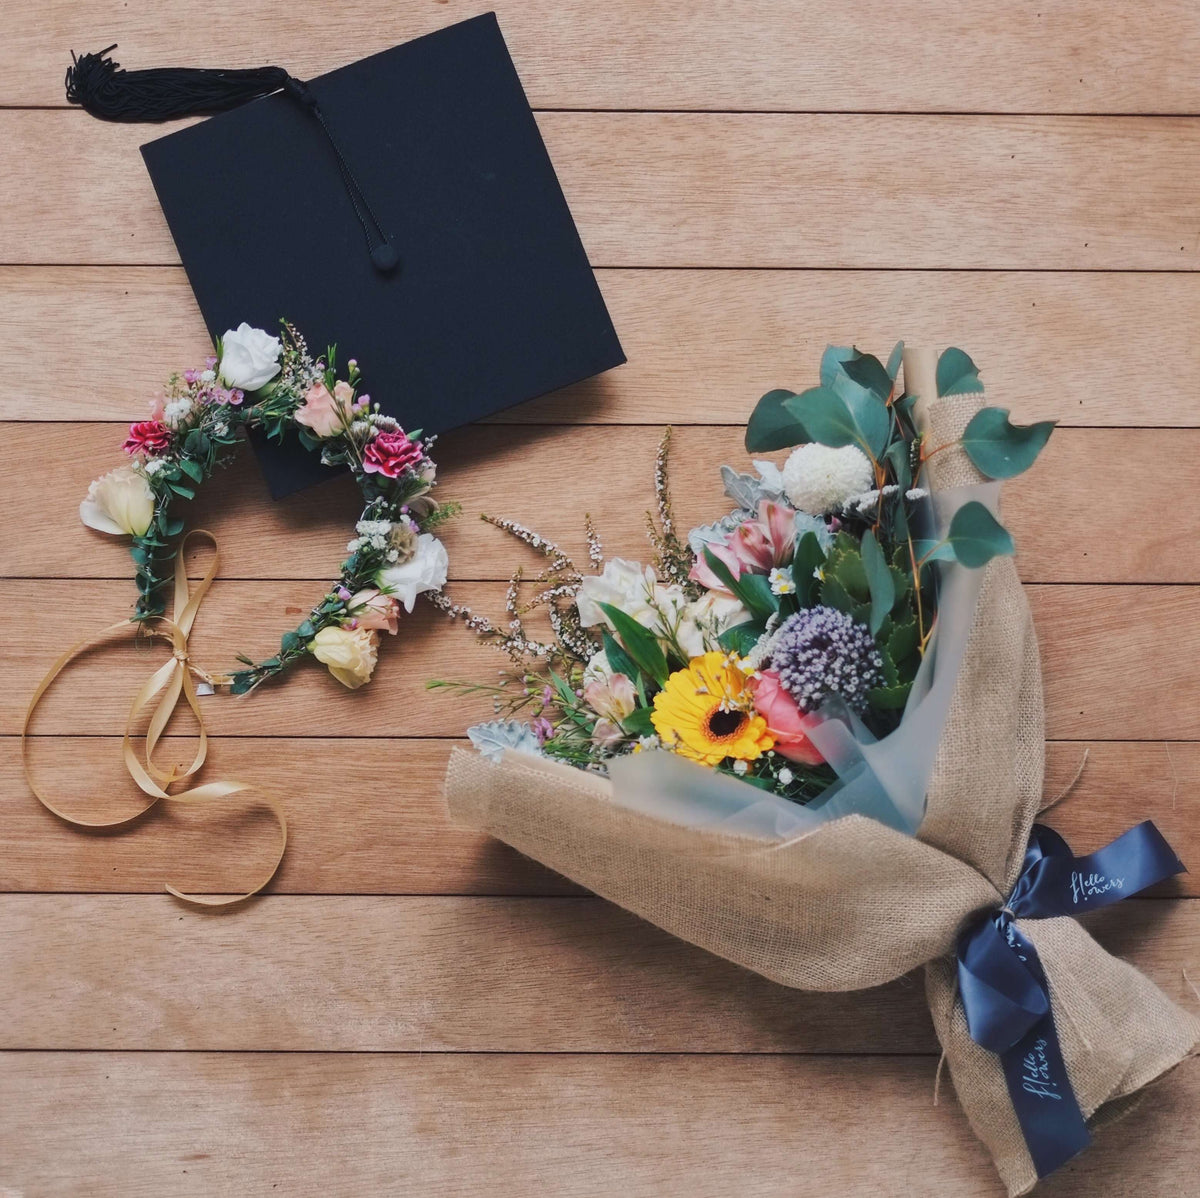 grad special | Bundle: Wildflower Crown + Small Hand-Tied Bouquet - hello flowers!